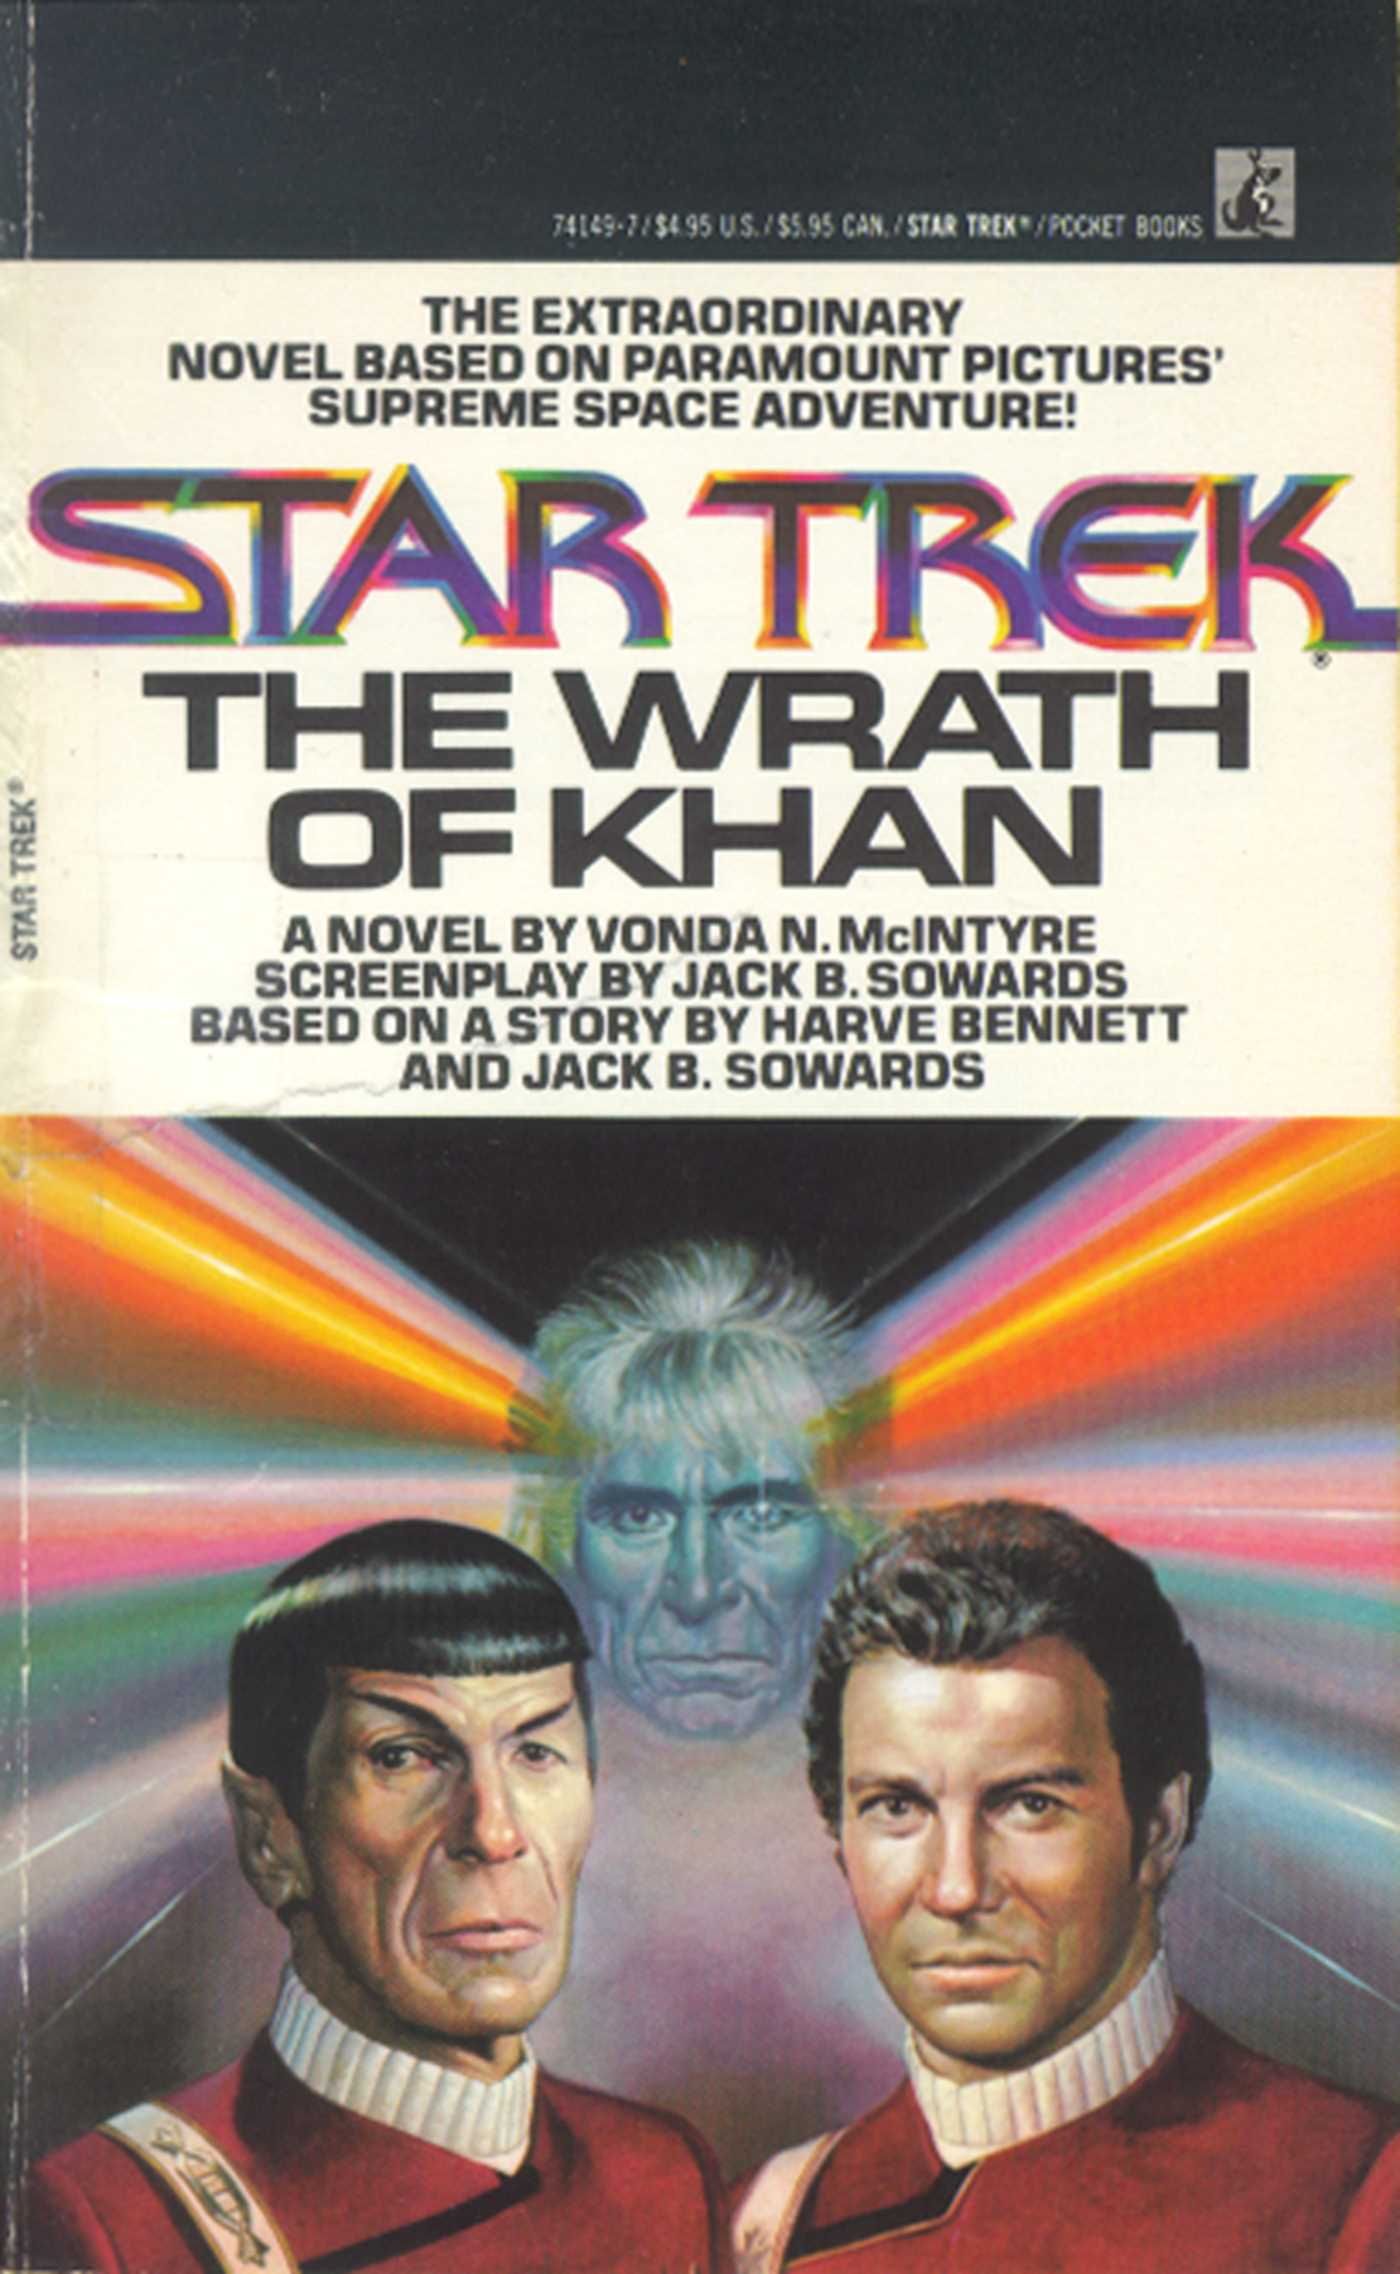 Star-trek-ii-the-wrath-of-khan-9780743419581_hr